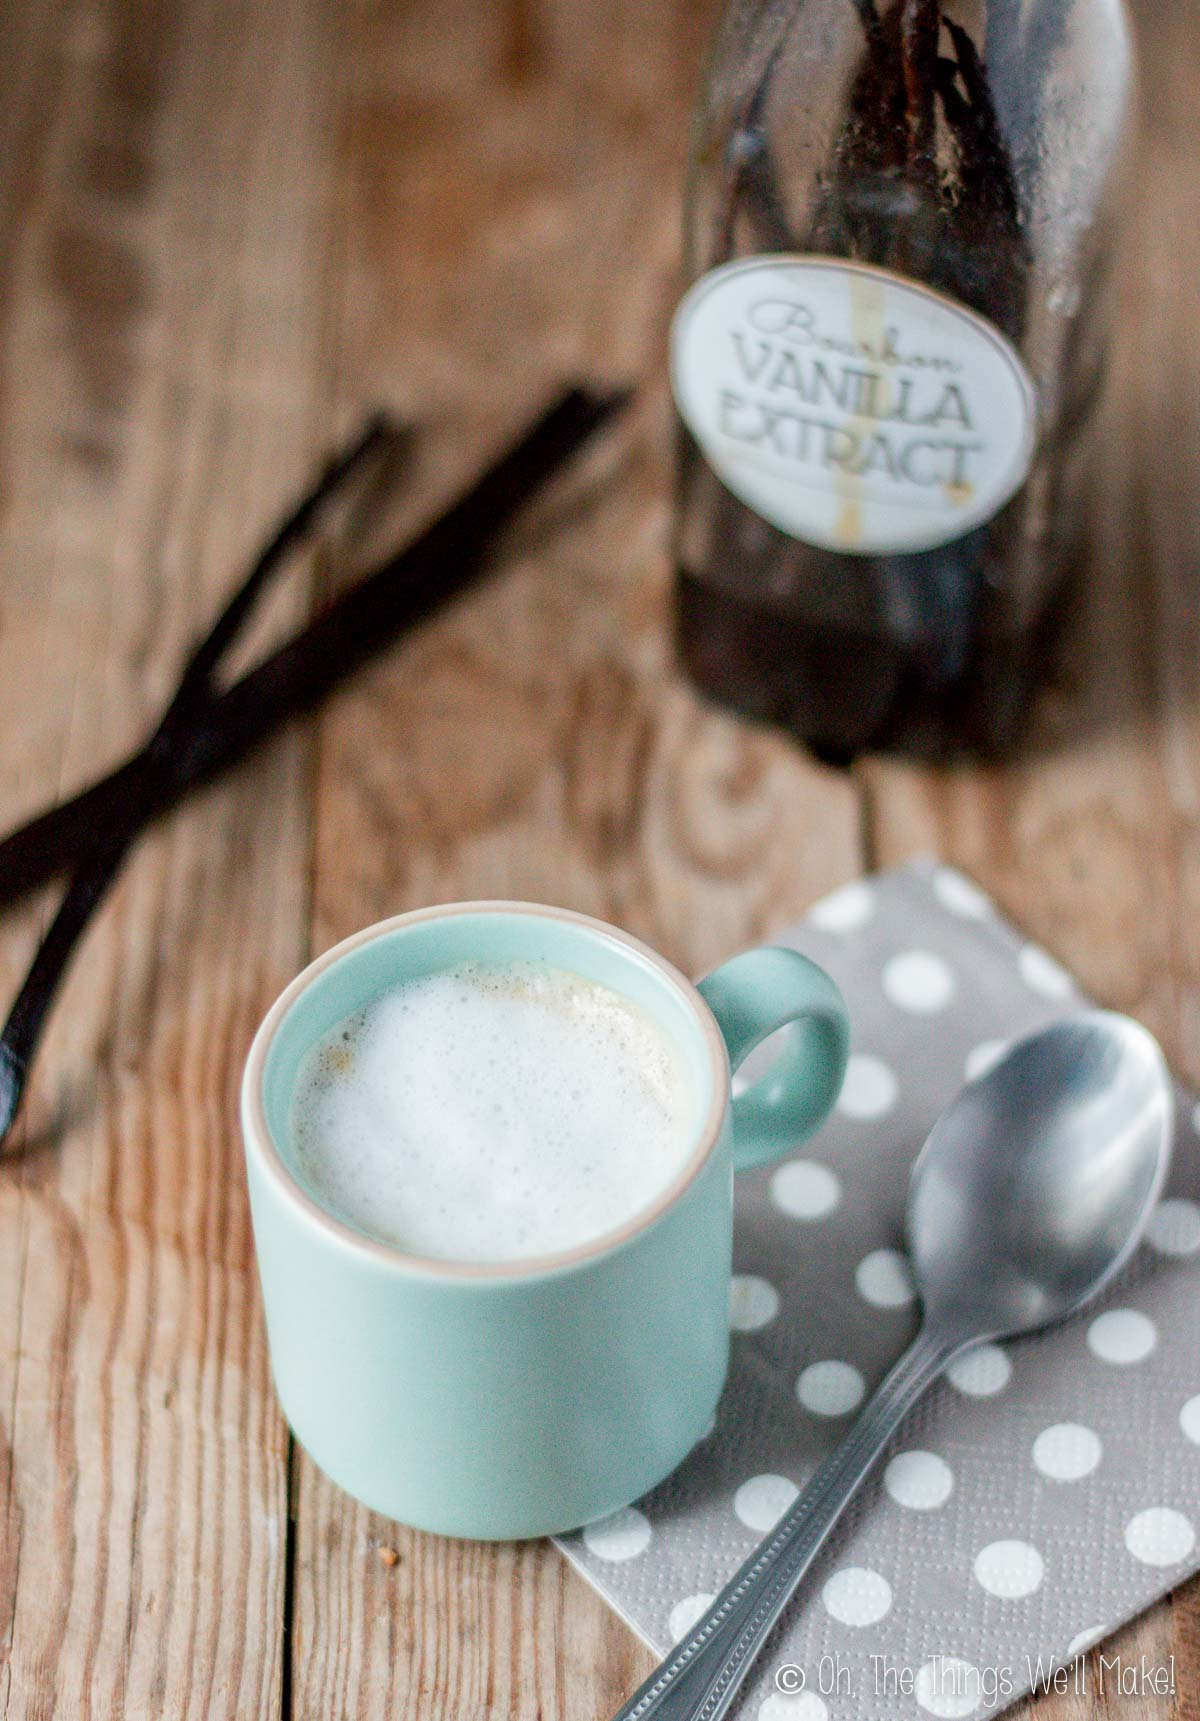 A cup of coffee with milk in front of a bottle of vanilla extract and some vanilla beans